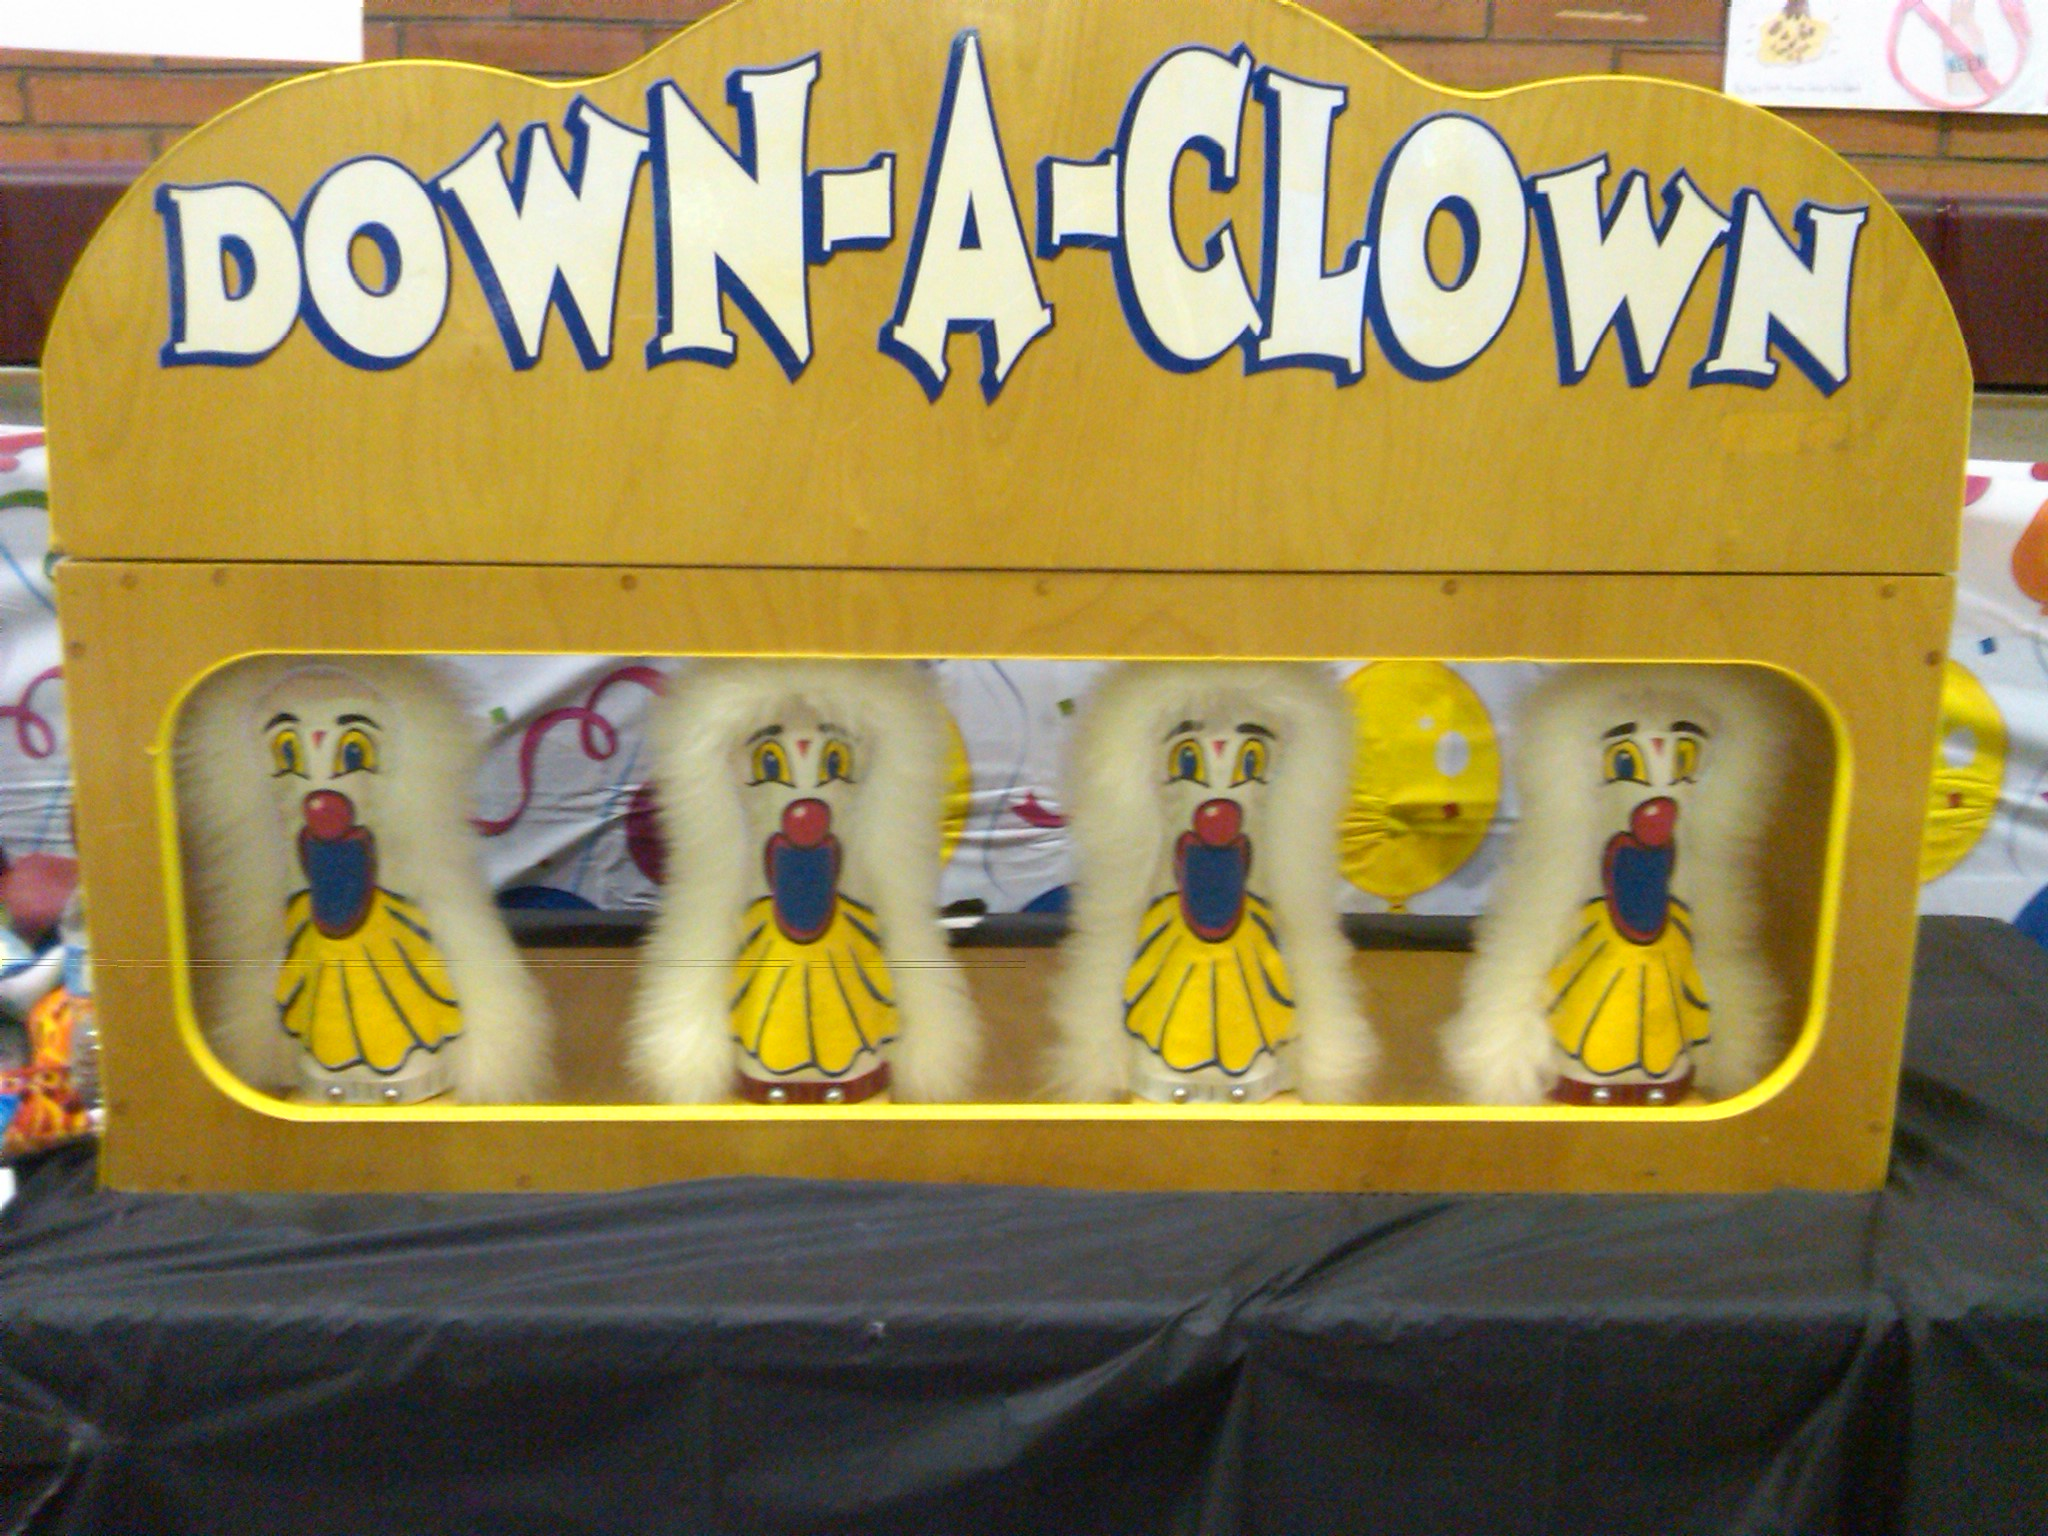 Down A Clown